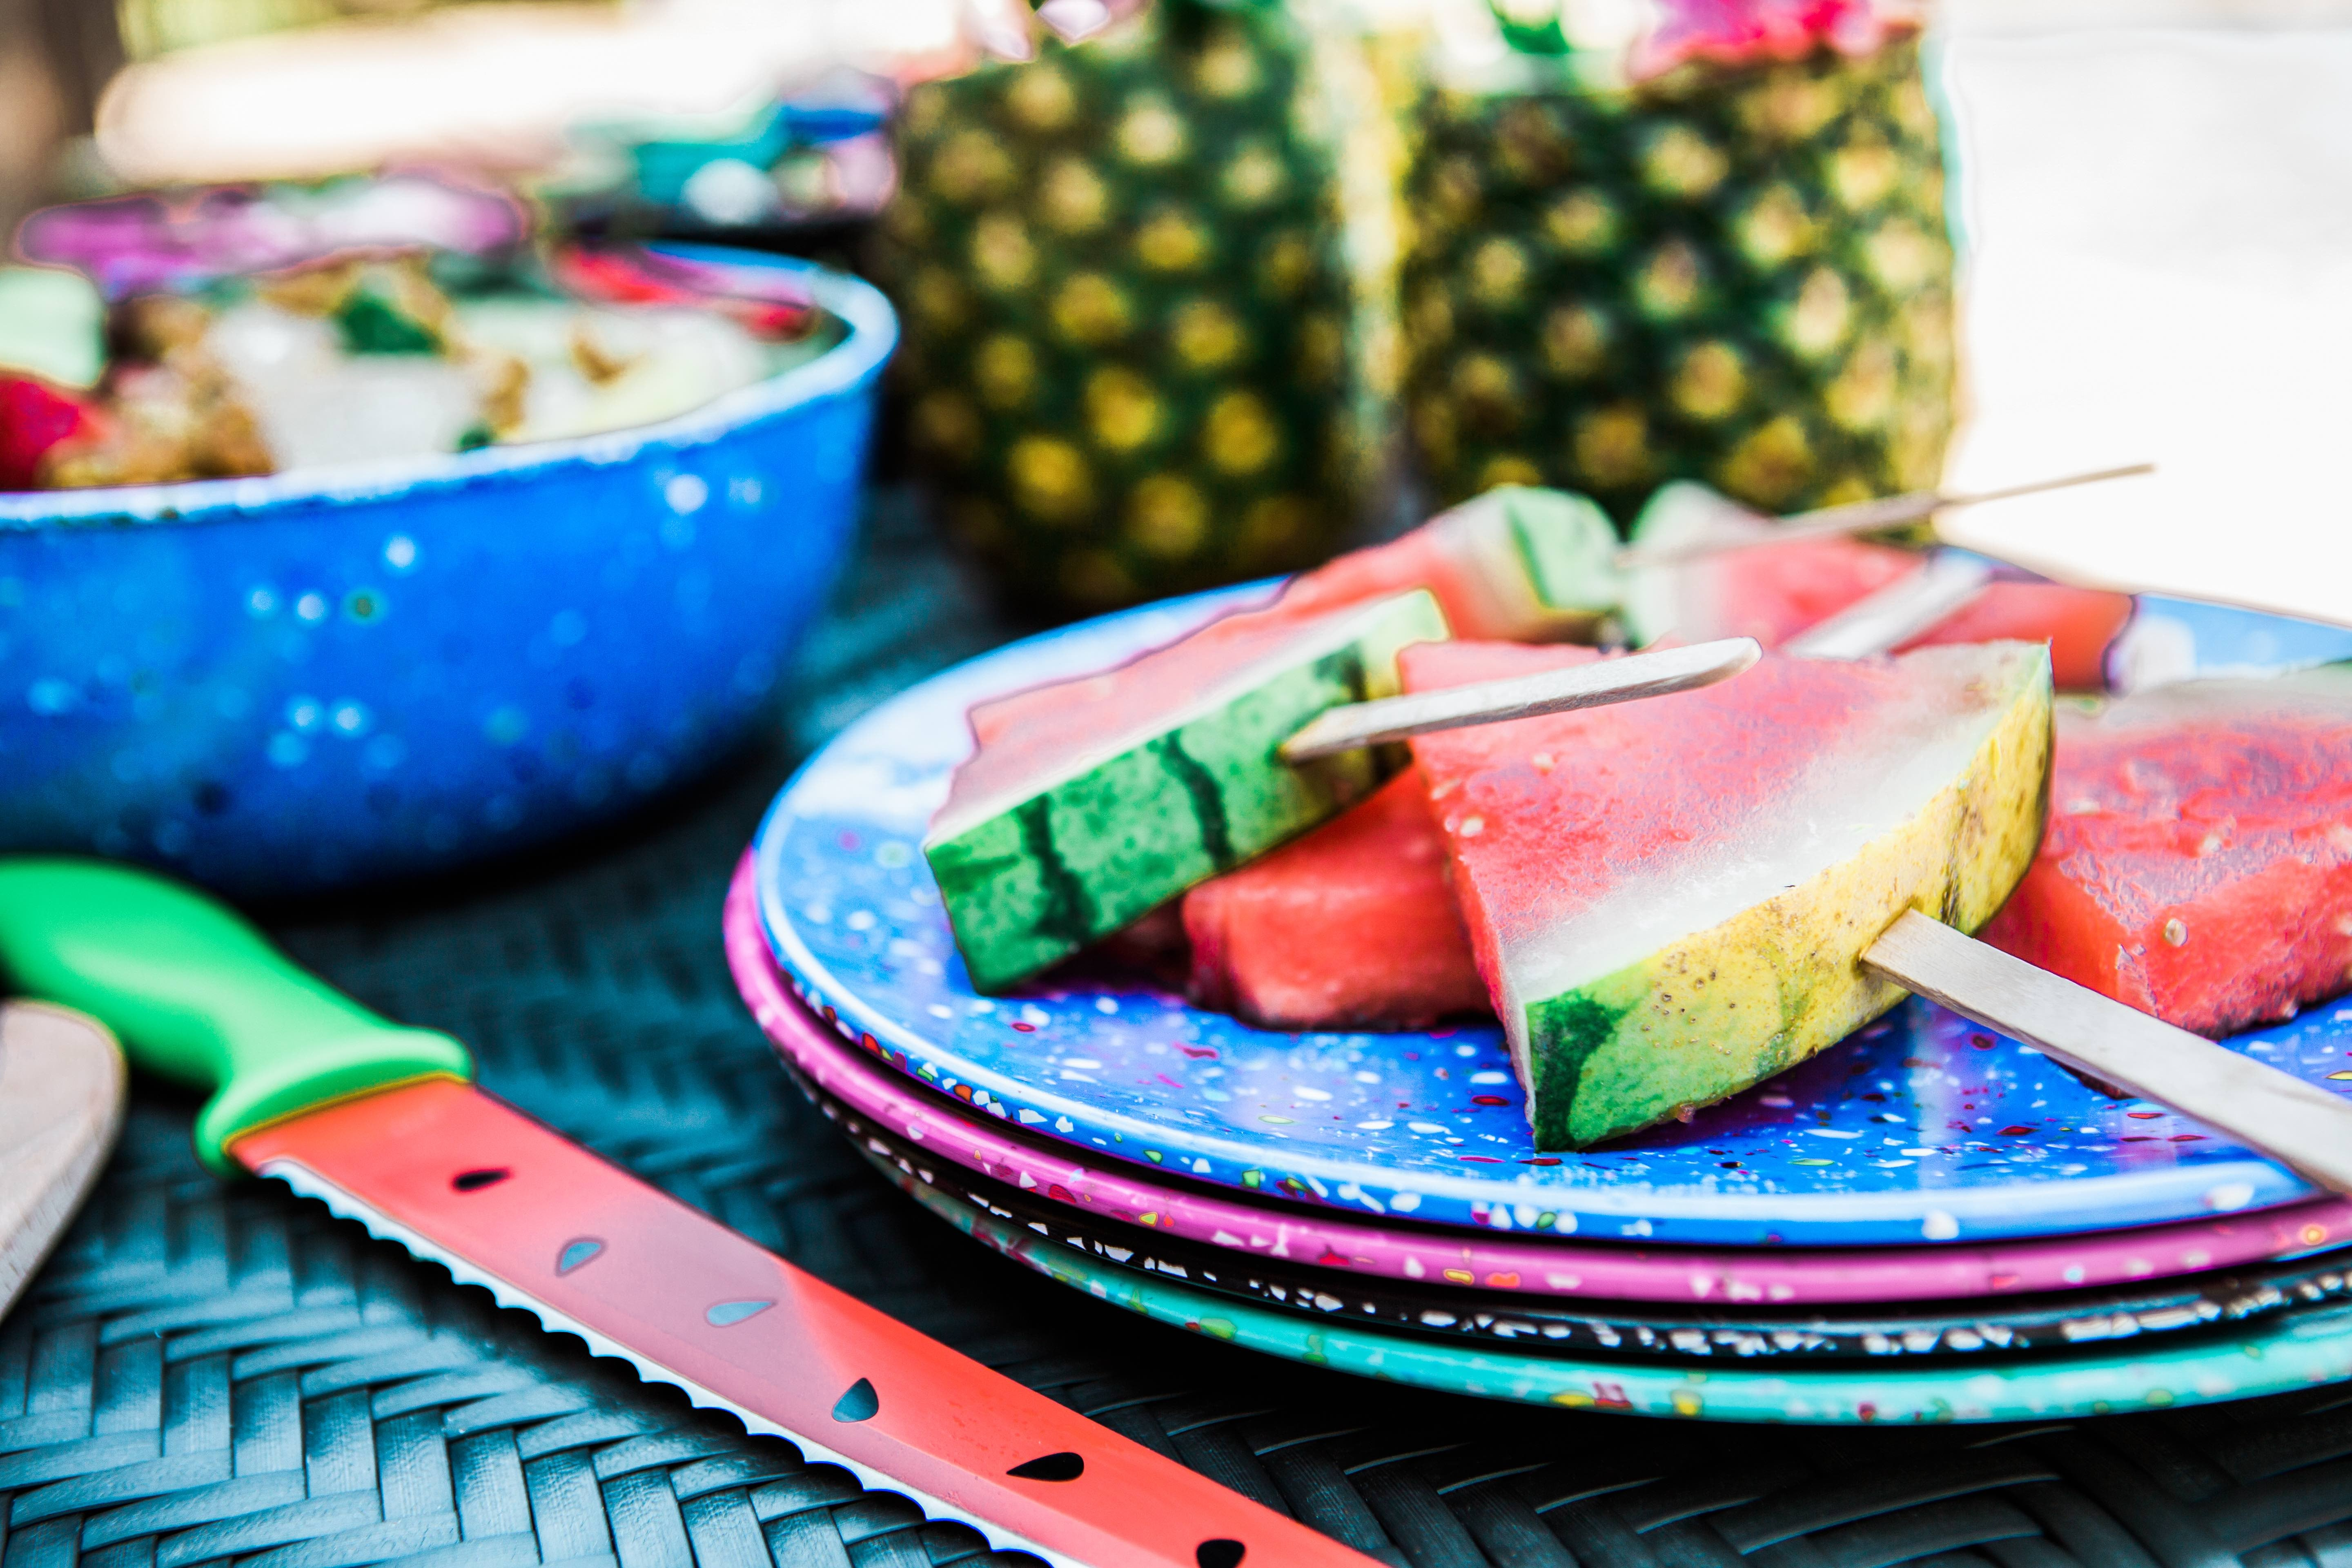 Good Cook Watermelon Knife